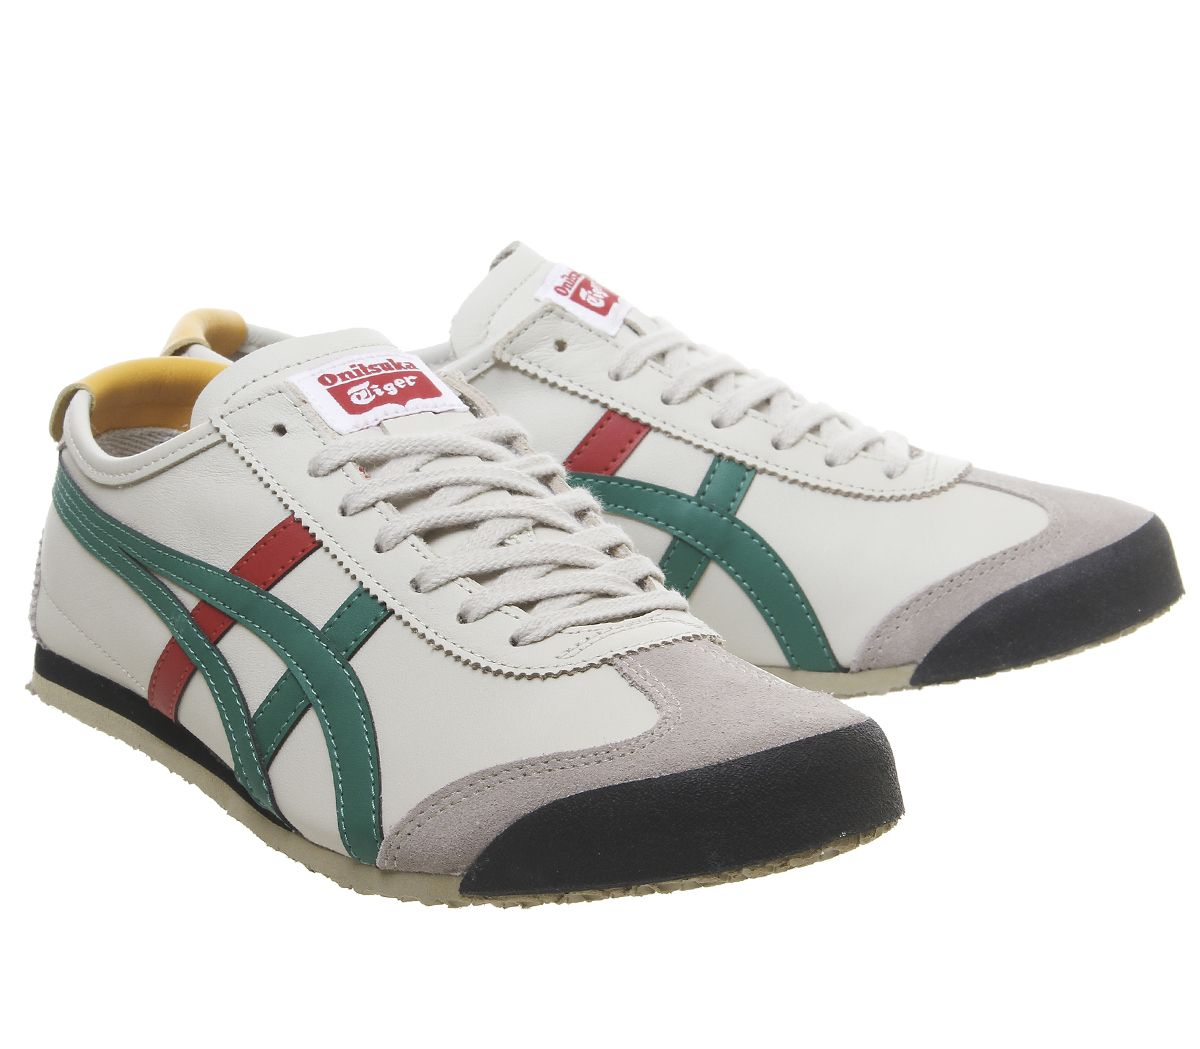 100% authentic f274c 0029d Details about Mens Onitsuka Tiger Mexico 66 Trainers Birch Green Red  Trainers Shoes